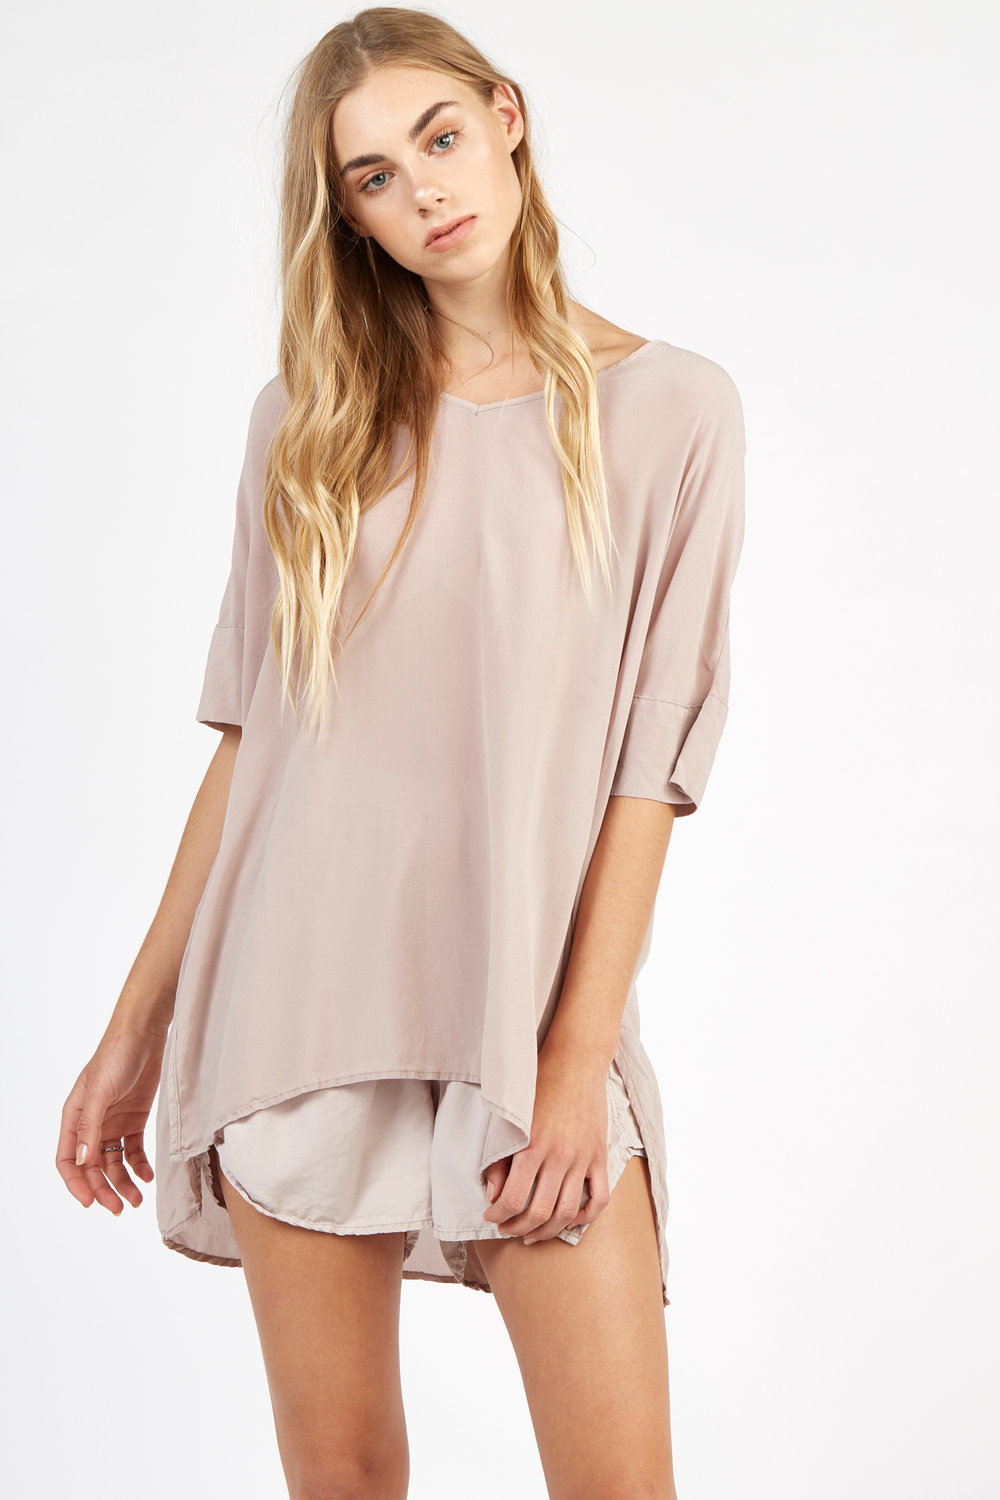 WILLA TOP TAUPE. LIMMY SHORT SANDY